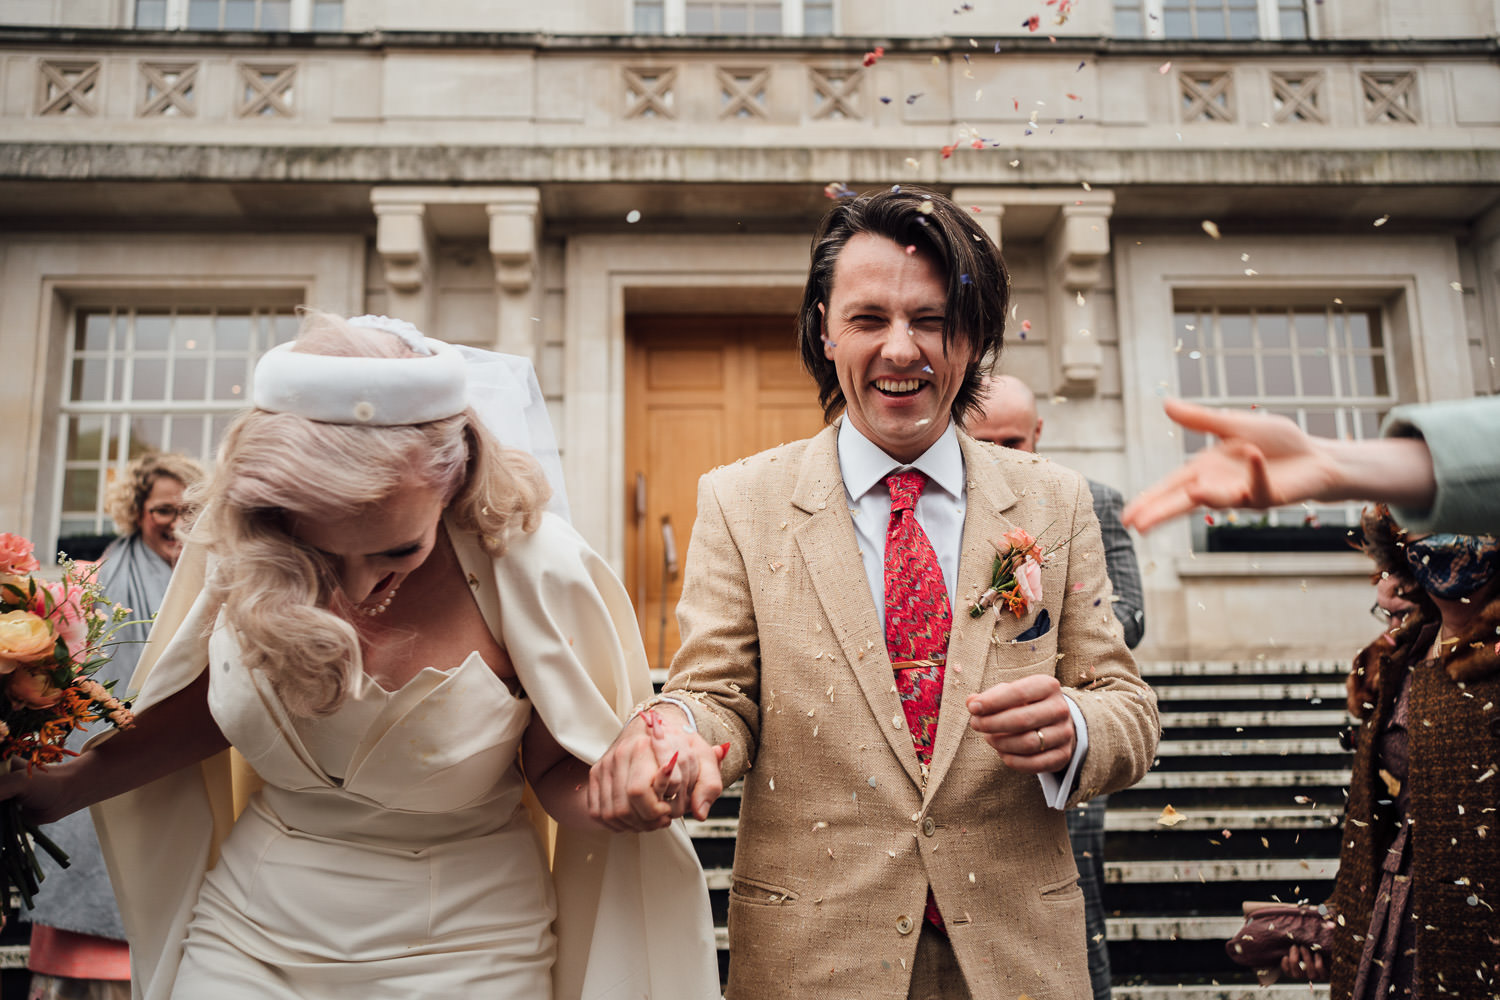 confetti throw in hackney town hall wedding by alternative wedding photographer the shannons photography